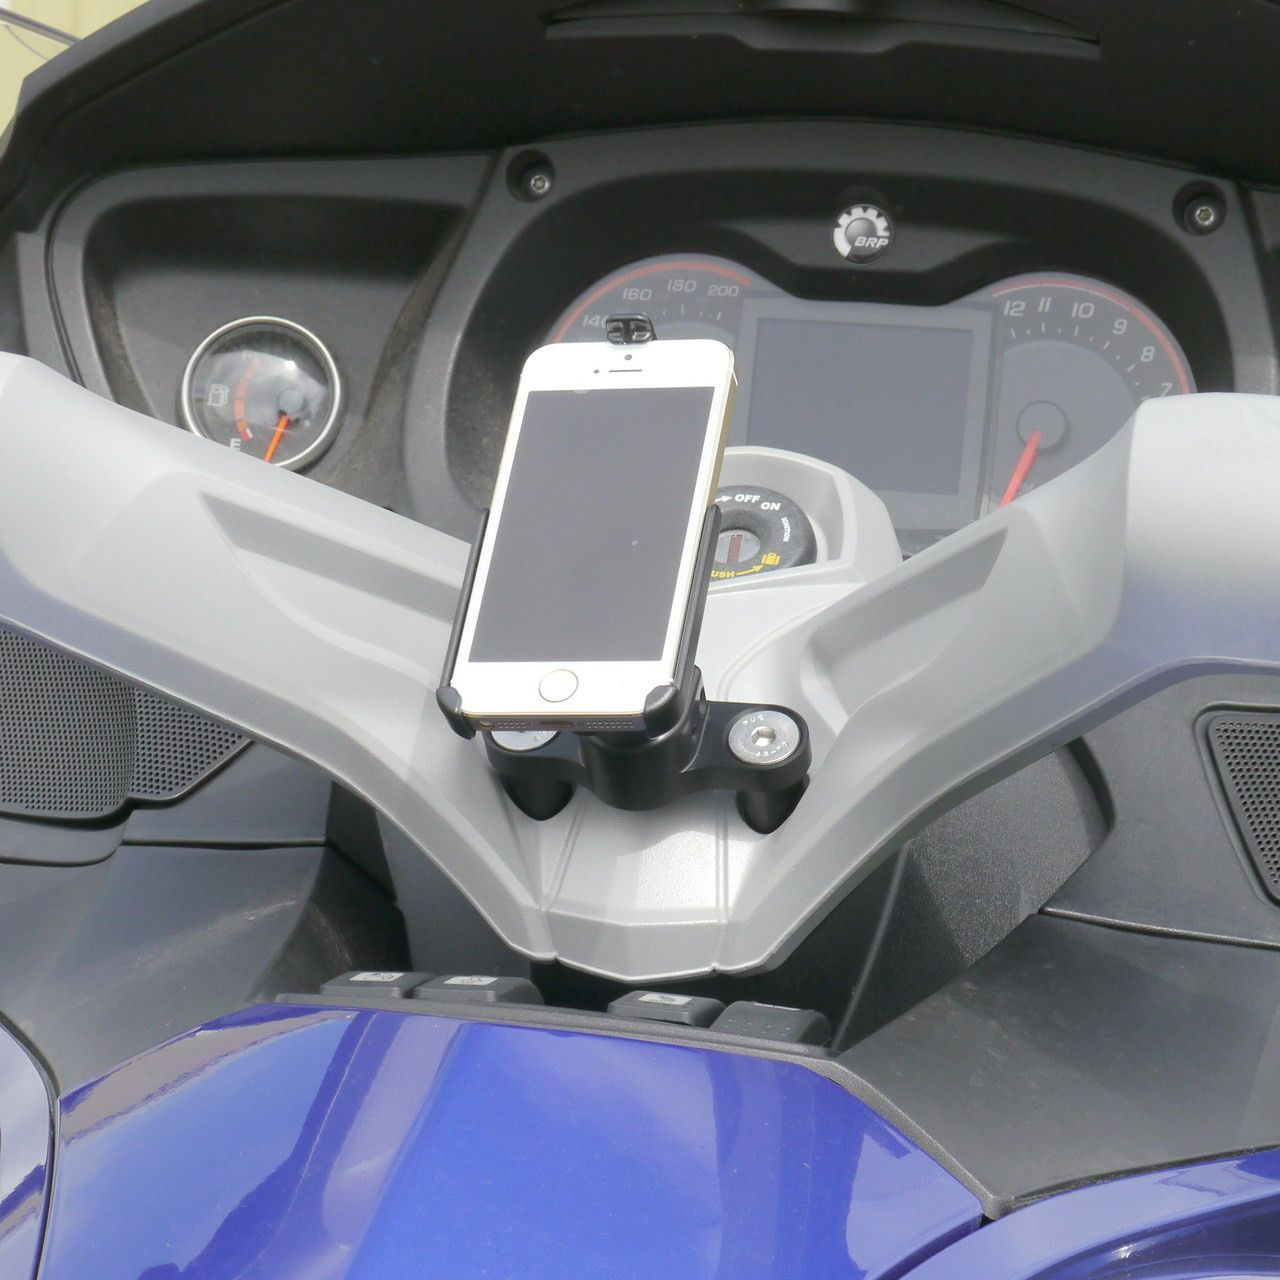 Ecaddy Diamond Motorcycle Iphone Mount For Can Am Spyder Center Bombardier Rally 200 Wiring Diagram Handlebar The